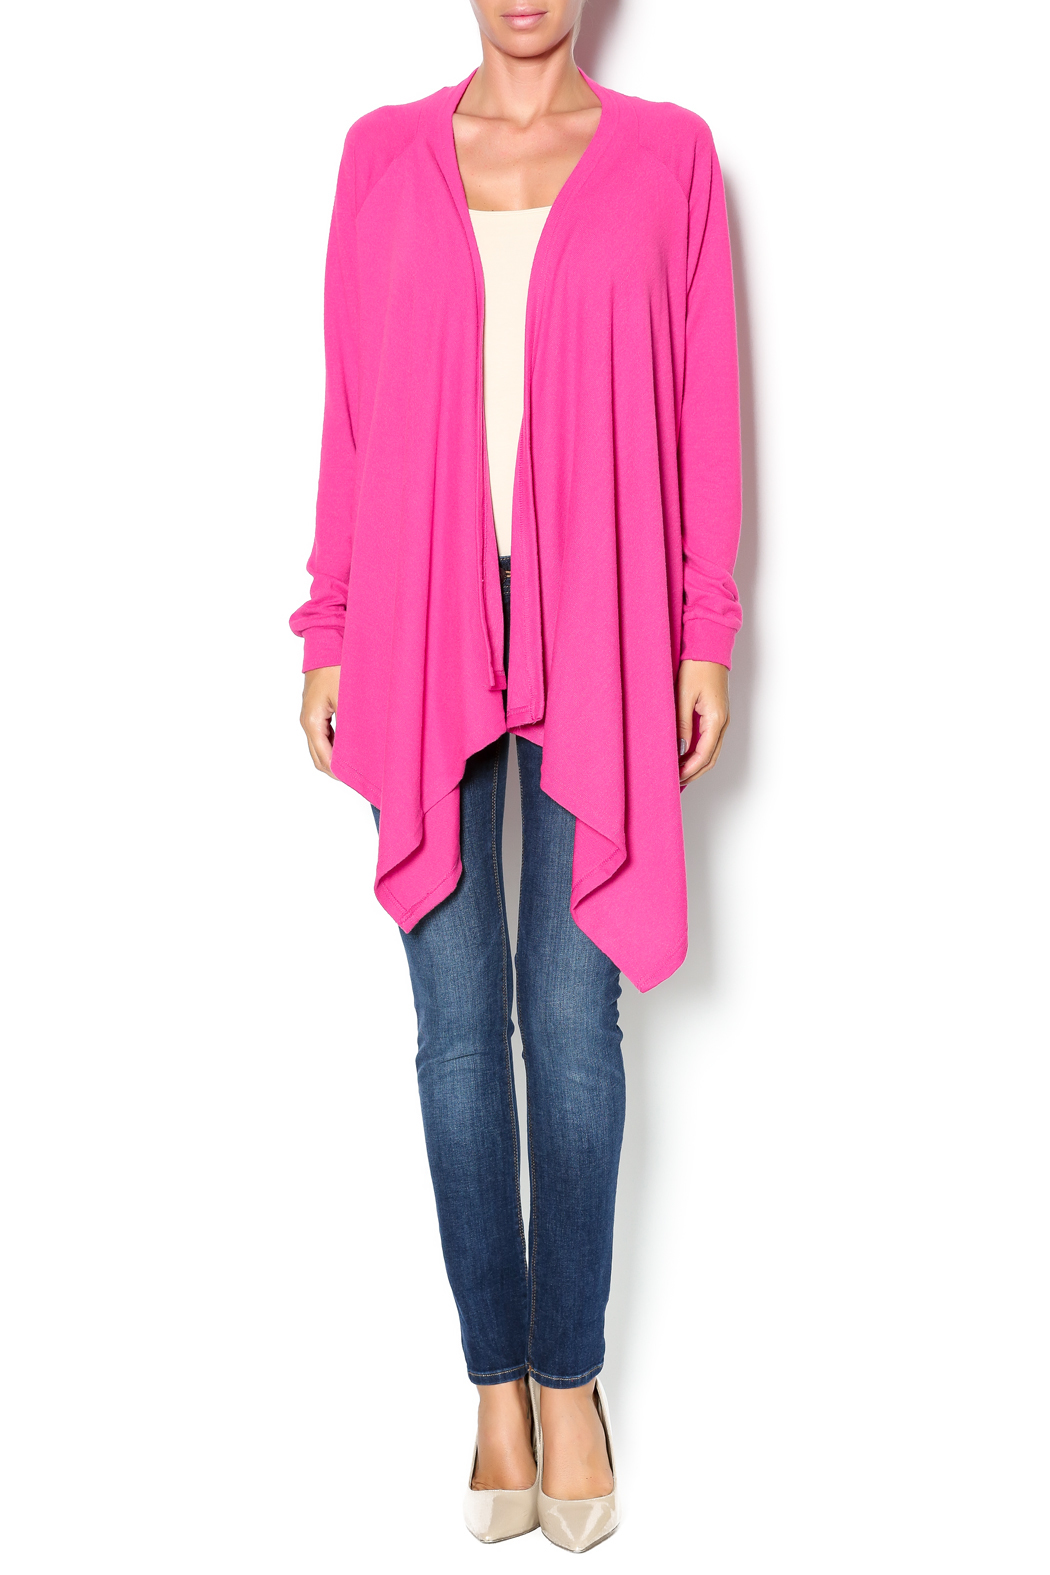 All For Color Pink Waterfall Cardigan from Louisville by Apricot ...